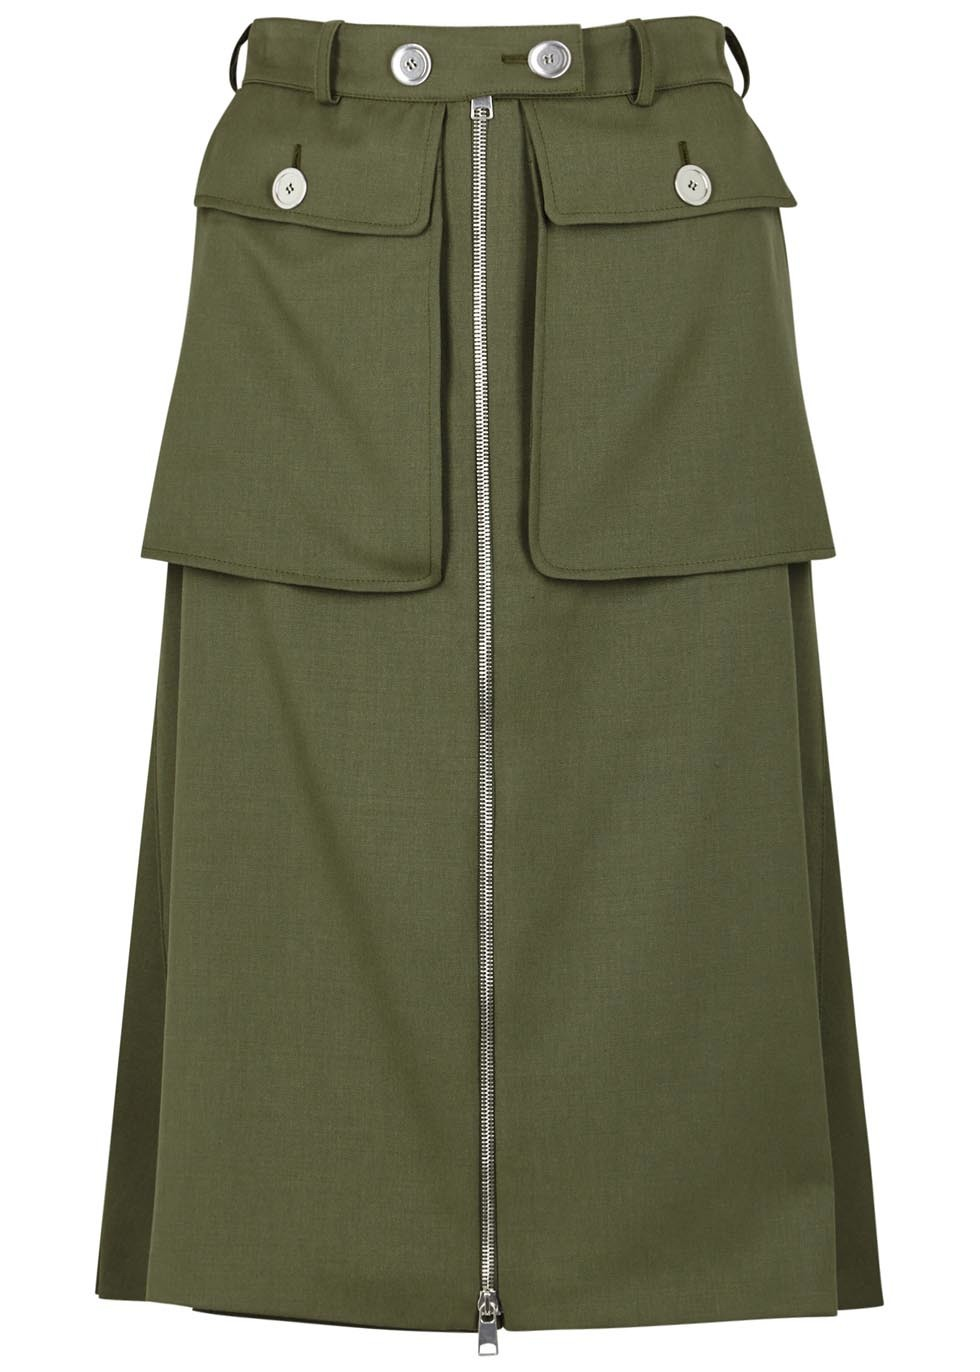 Olive Green Wool Skirt - pattern: plain; fit: loose/voluminous; waist: high rise; predominant colour: khaki; occasions: casual, creative work; length: on the knee; style: a-line; fibres: wool - 100%; hip detail: subtle/flattering hip detail; pattern type: fabric; texture group: woven light midweight; wardrobe: basic; season: a/w 2016